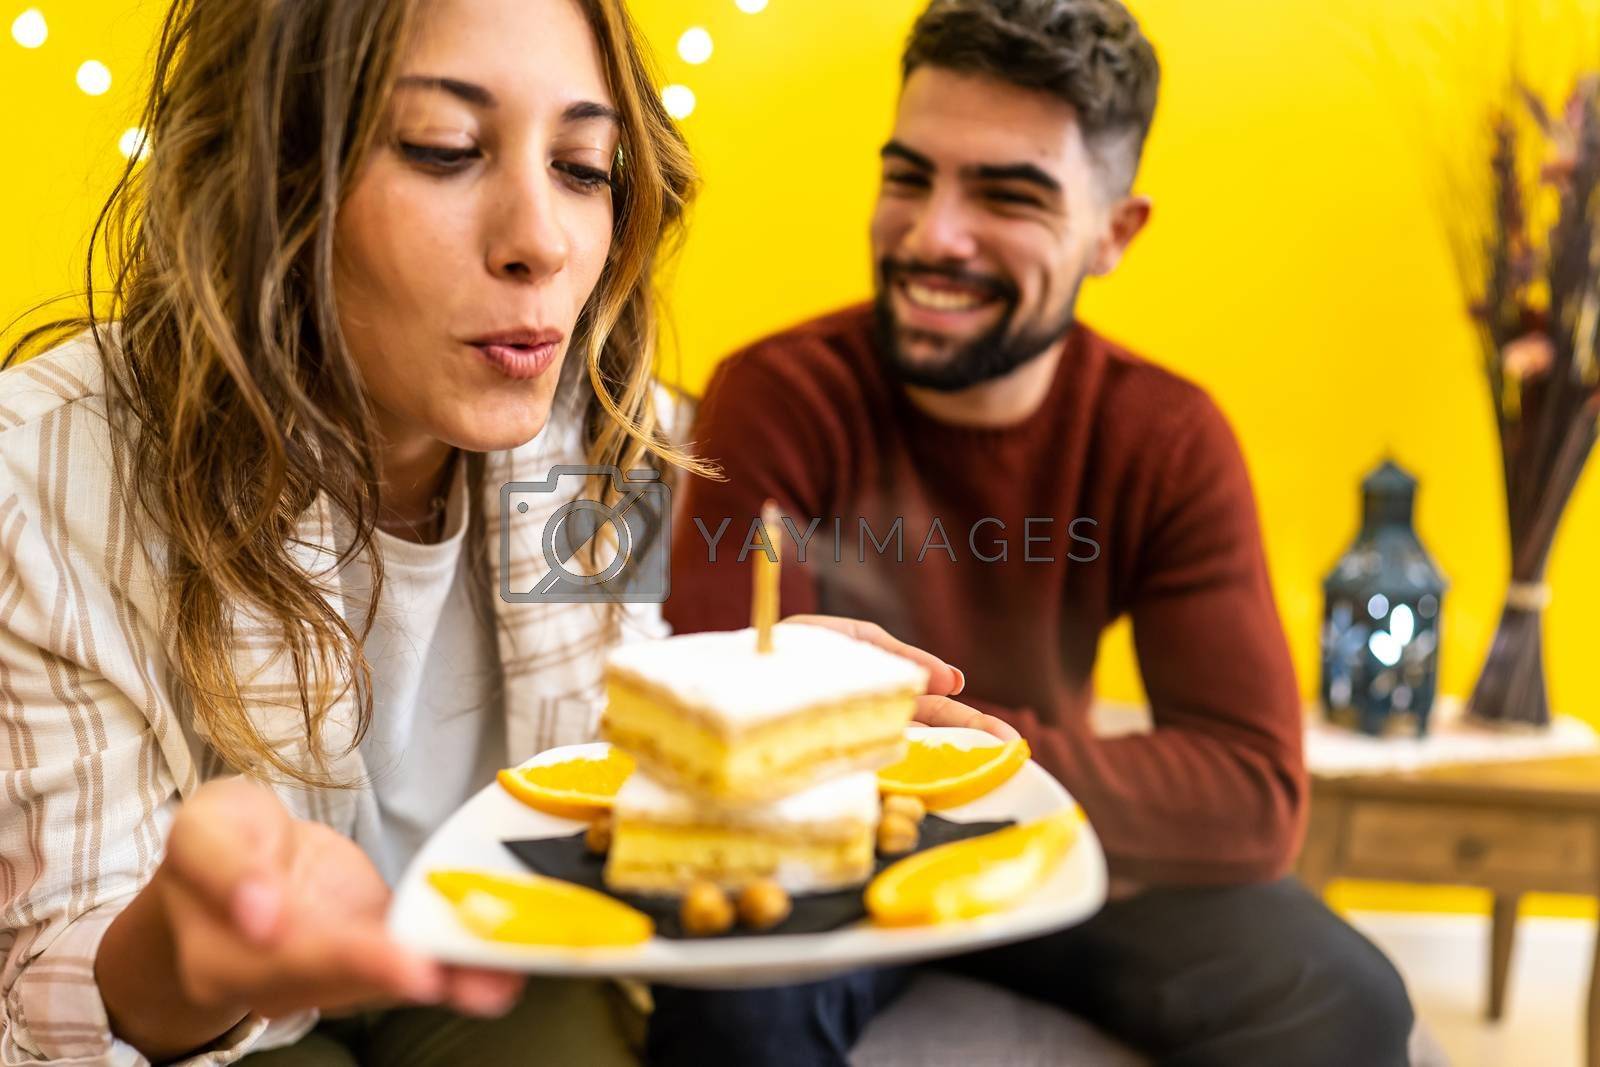 Young cute blonde woman blows out the candle of her birthday cake with her smiling boyfriend sitting on the sofa - Couple event celebration at home - Focus on the tuft of hair in the center